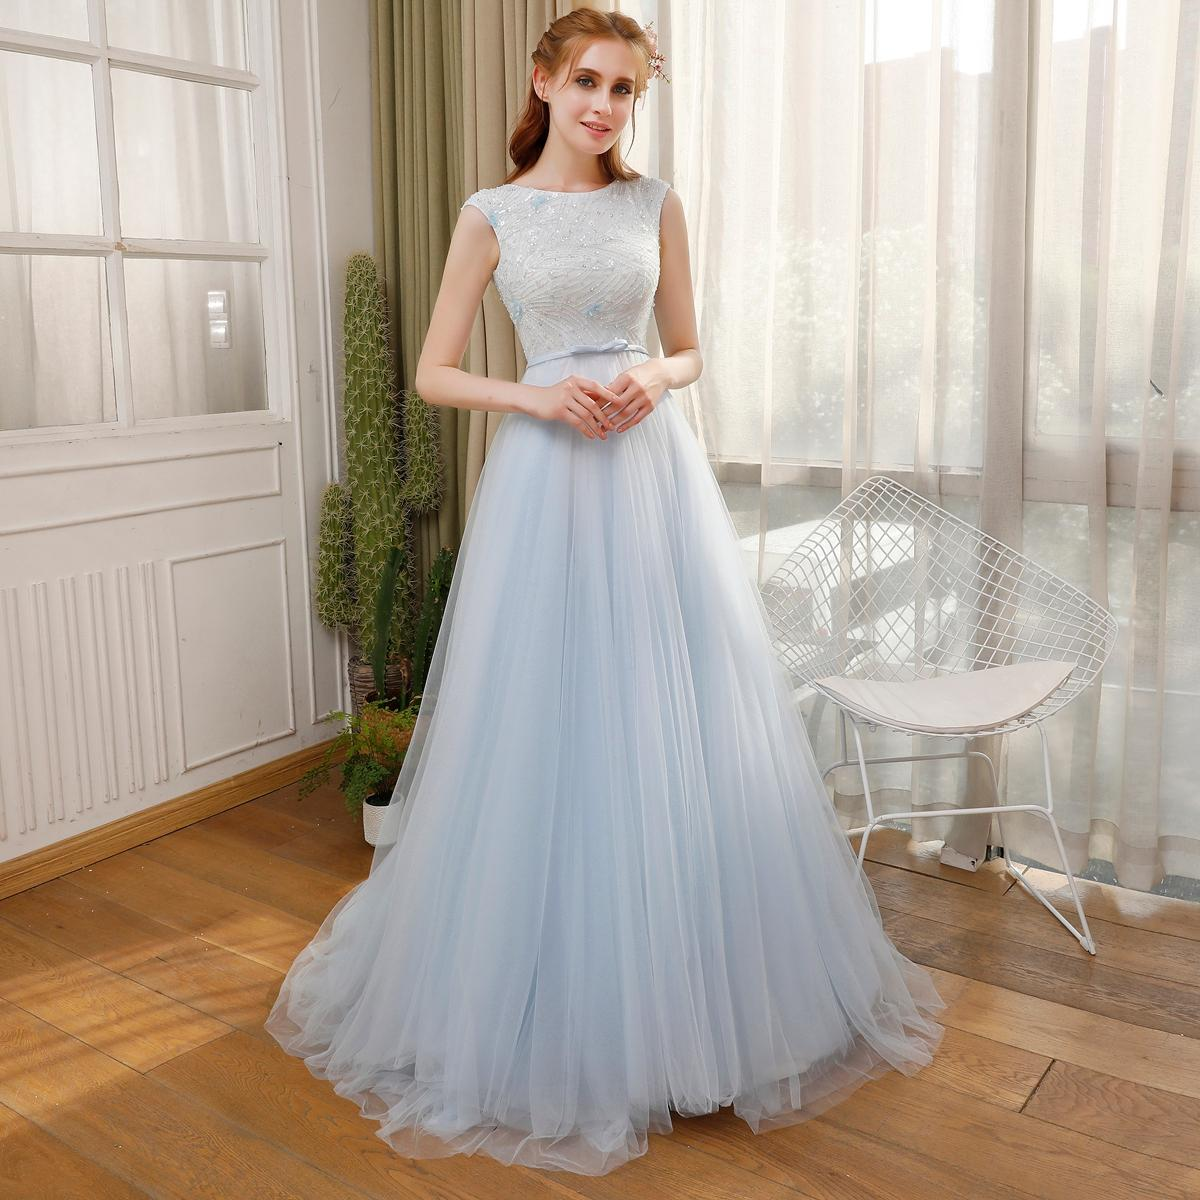 Ssyfashion New High End Evening Prom Dress The Bride Luxury Crystal